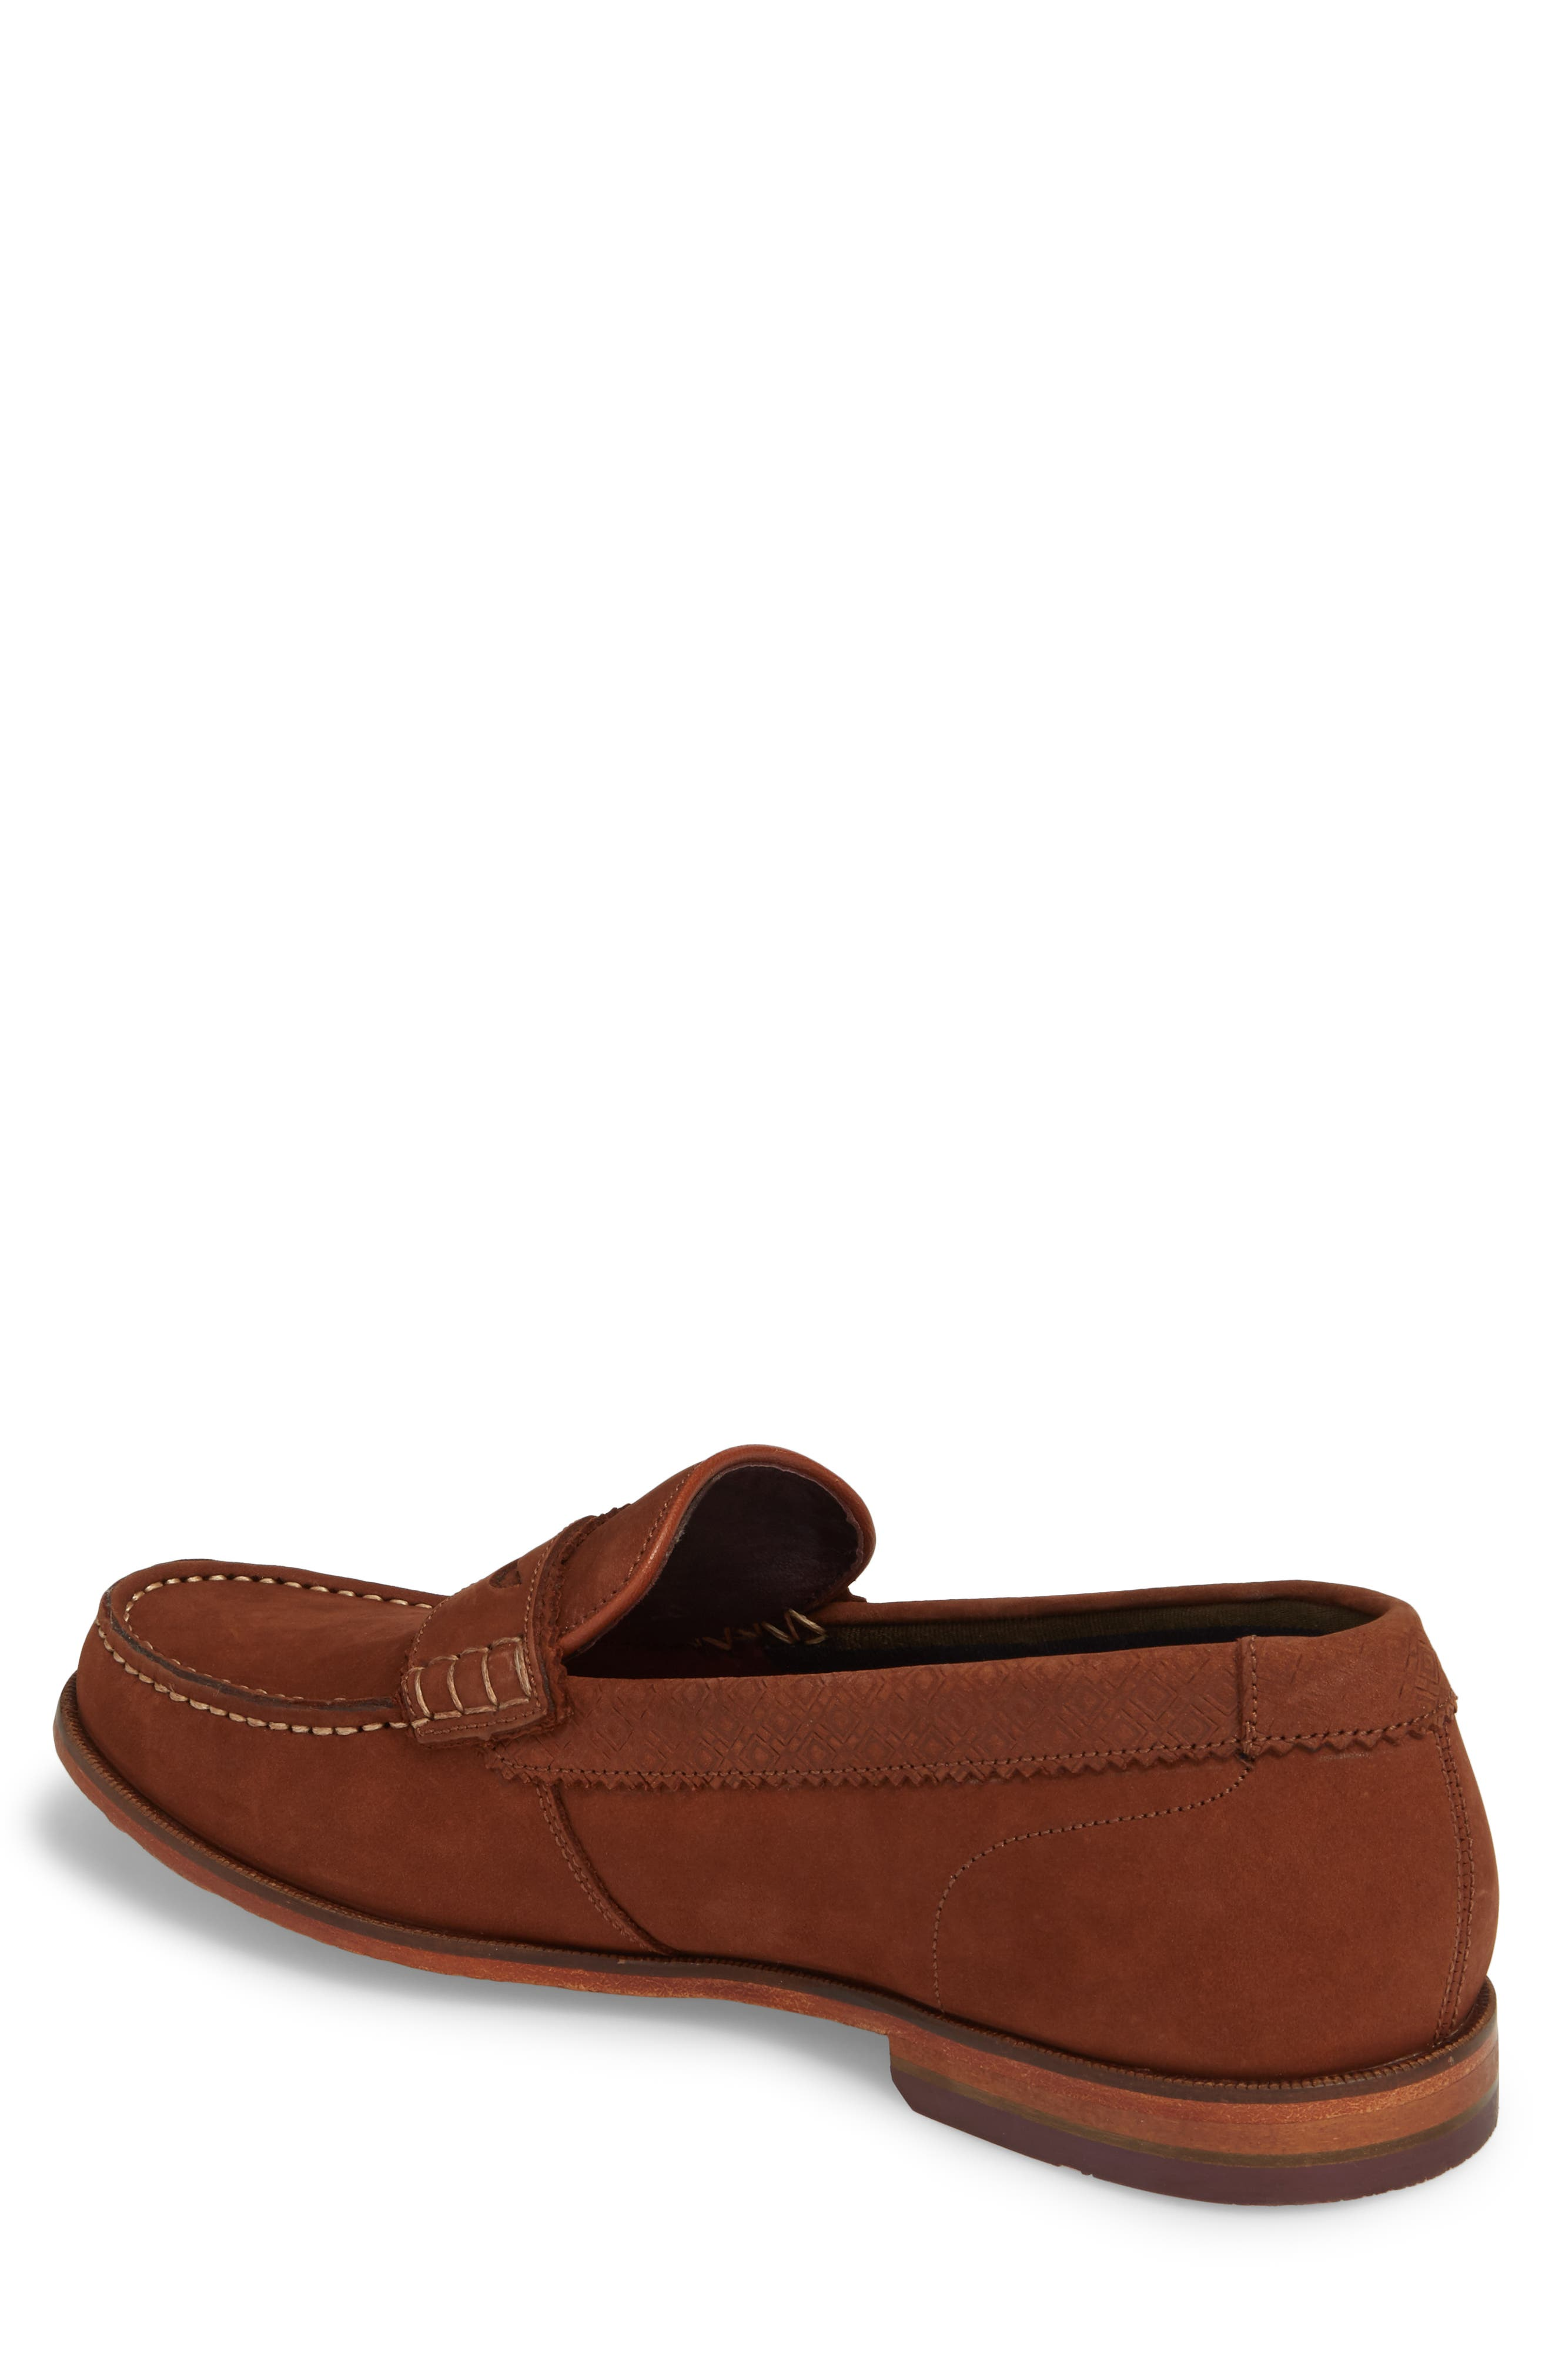 Miicke 5 Penny Loafer,                             Alternate thumbnail 2, color,                             209